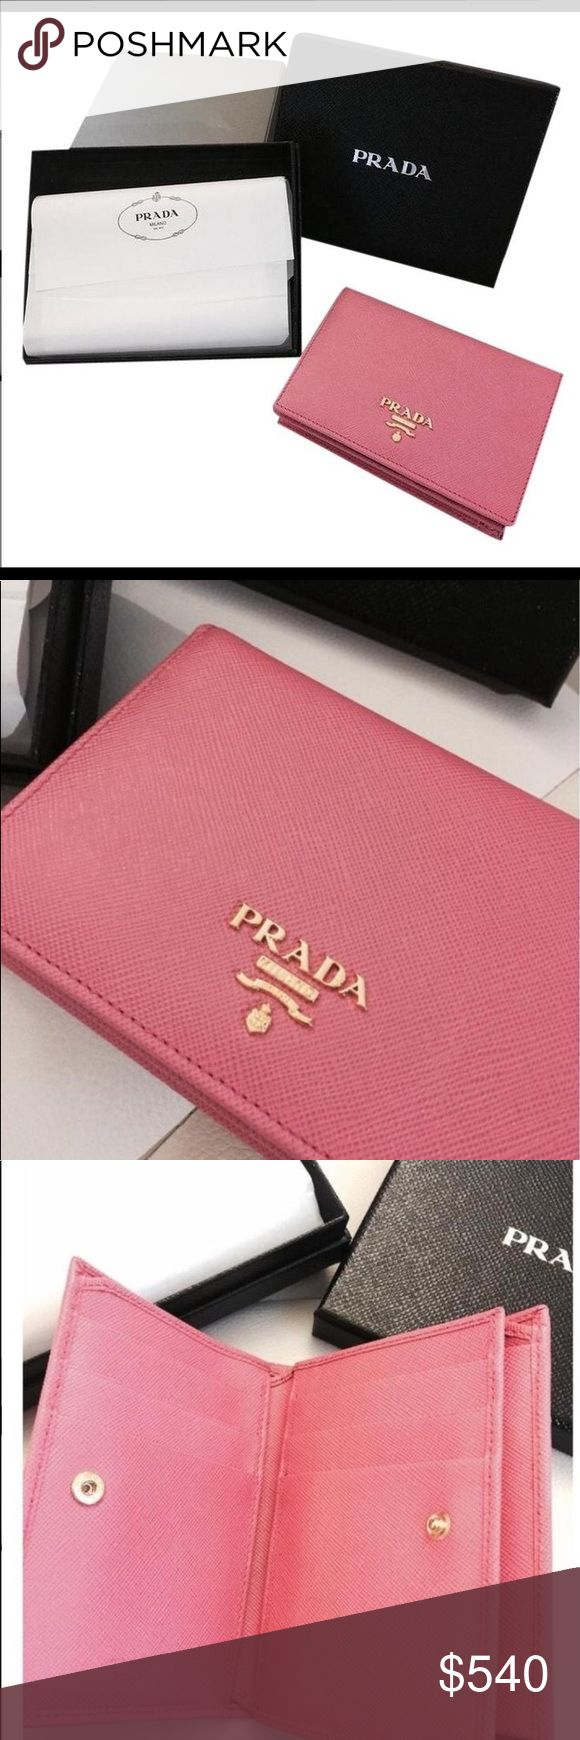 Prada Saffiano Geranio pink wallet New In Box Authentic Prada Wallet - NEW IN BOX  Authenticity Card and Original box PRADA SMALL WALLET Style: 1MV204 Color: Geranio (pink) Features: leather body Front logo plaque Snap button flap closure with Prada engraving  Credit card slots Absolutely new without any use and not available at stores. A very elegant and classy item and the ideal gift. Carefully wrapped, in the original boxes and with authenticity cards.  Retail Price: US$700,00 Color may…